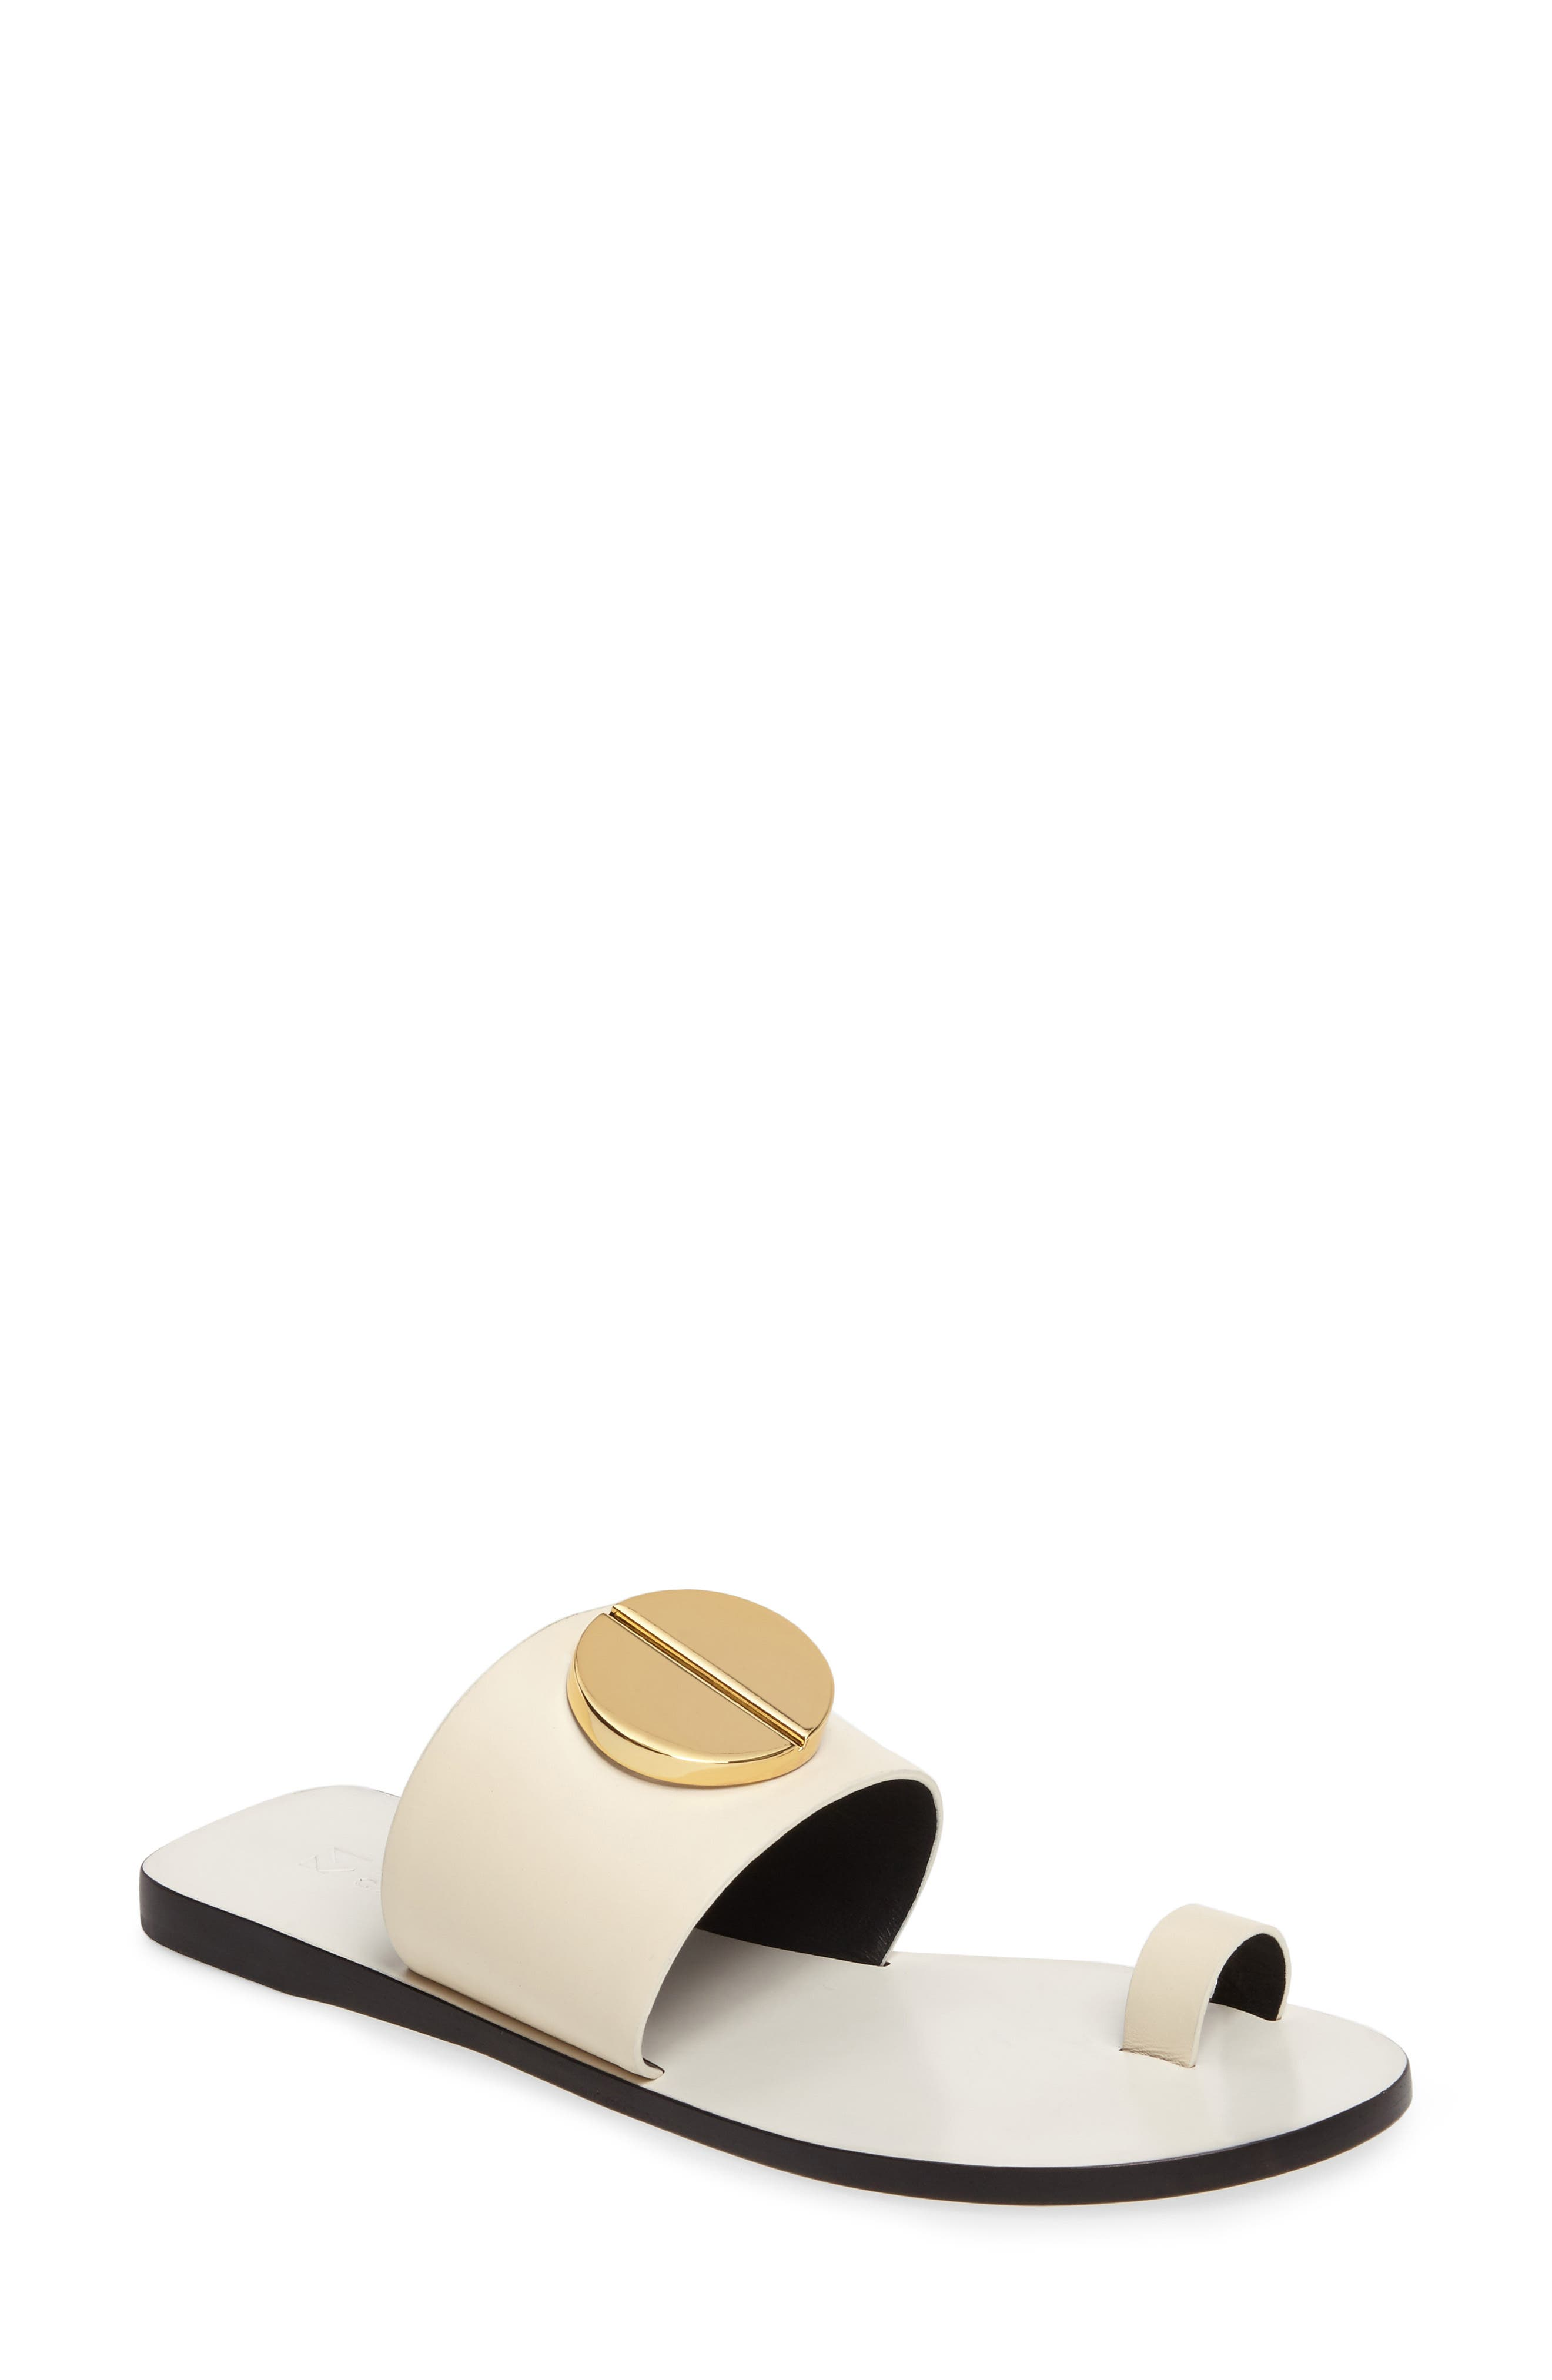 Main Image - Mercedes Castillo Fallon Toe-Loop Sandal (Women)